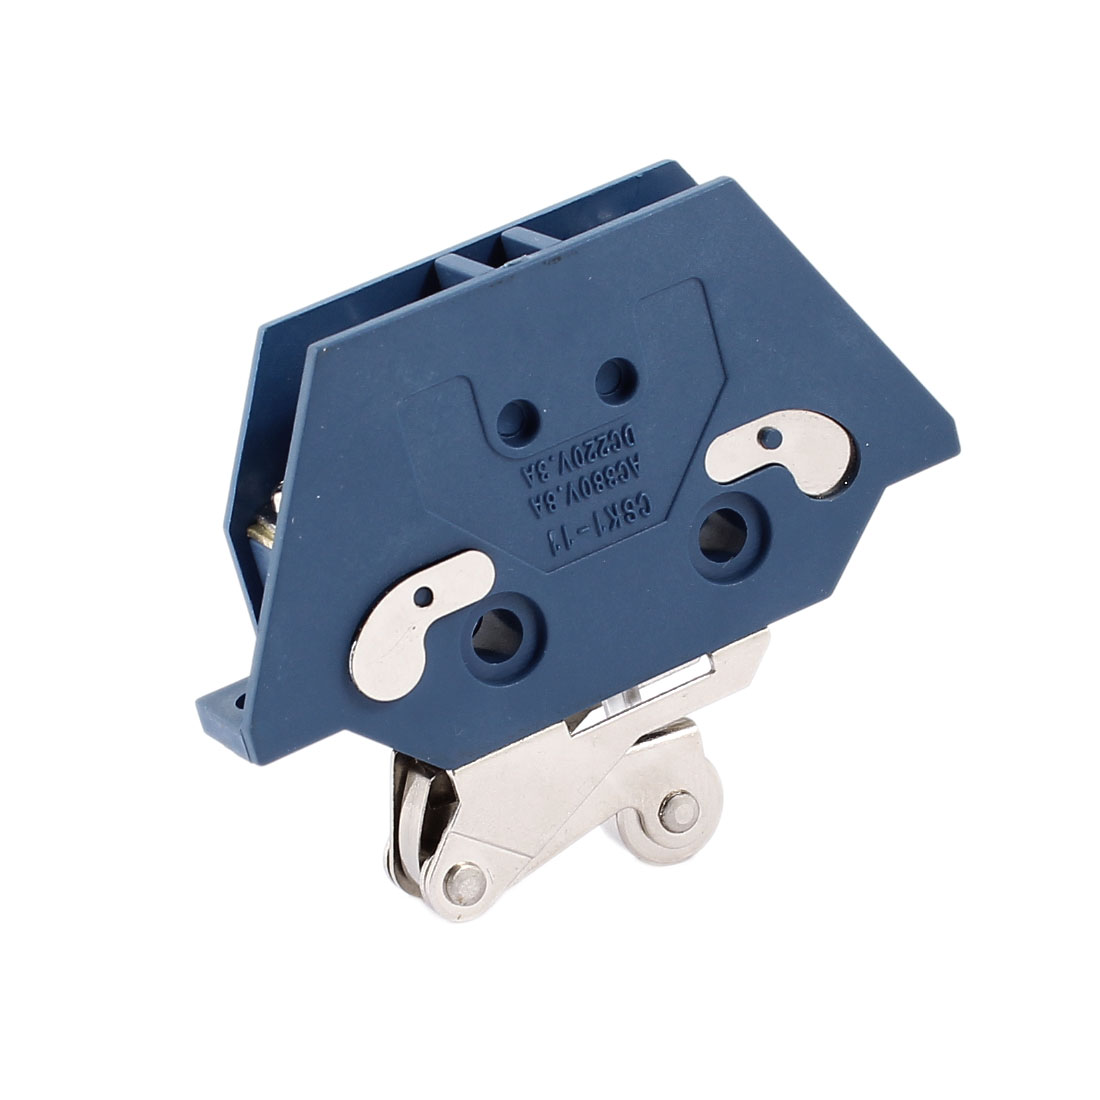 AC 380V 8A DC 220V 3A NO NC Rotary Roller Lever Limit Switch